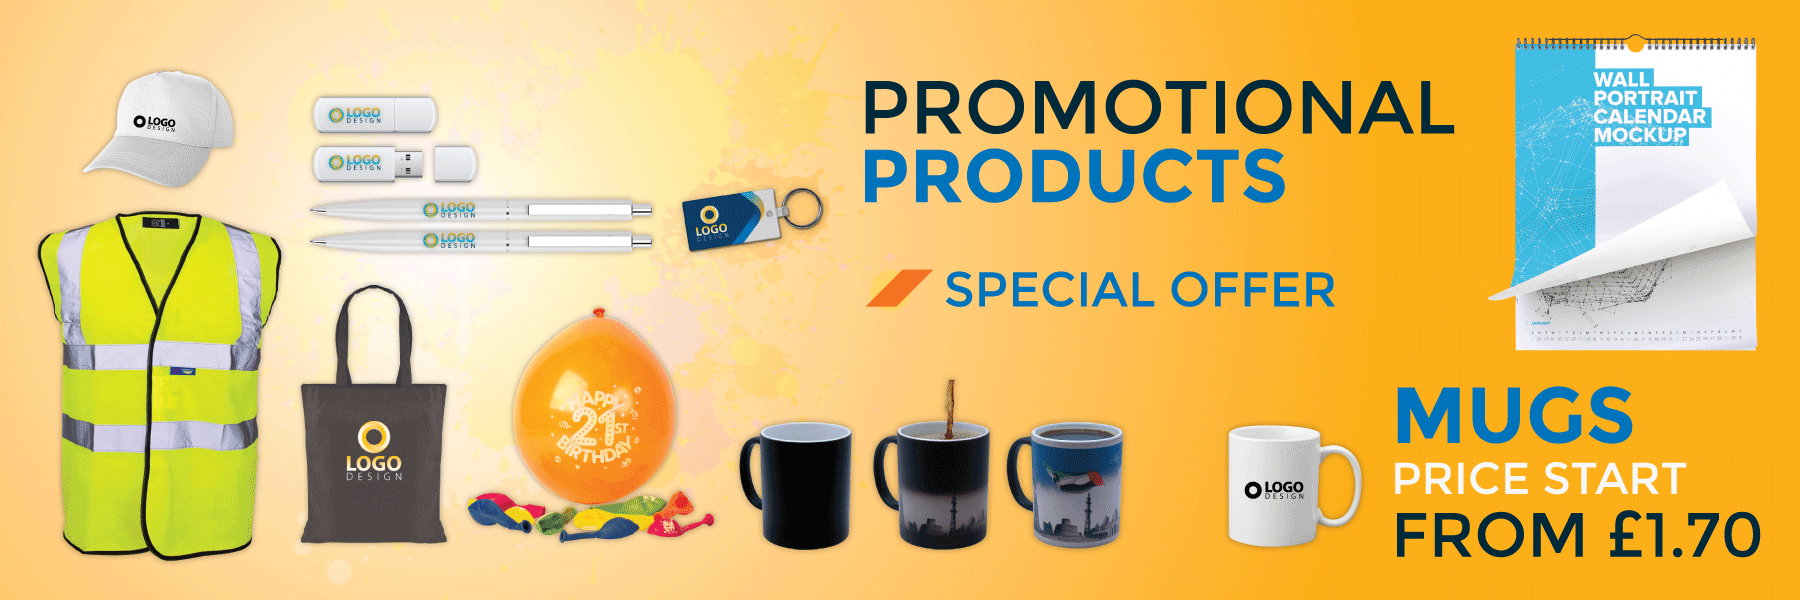 instant print promotional products mugs pens mouse pad keyrings caps and bags printing shop in london